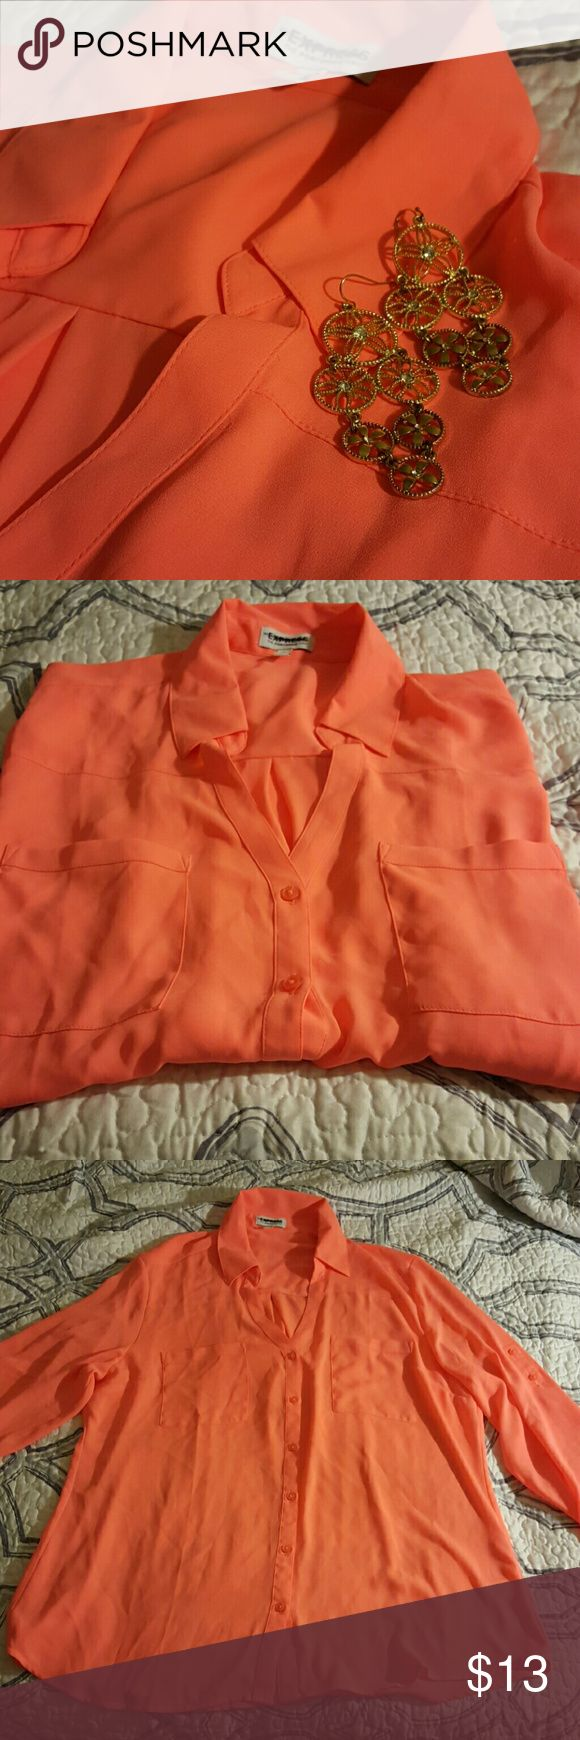 NWOT! Express Sheer top Long sleeve with buttons. I bought this a while back and never used it. The pictures are bad, but this top is an awesome orange/pinkish neon color. Could go great with black bottoms. I've thought about pairing this top with a cute mini leather skirt I have. Up for grabs ladies!!! :) Express Tops Blouses